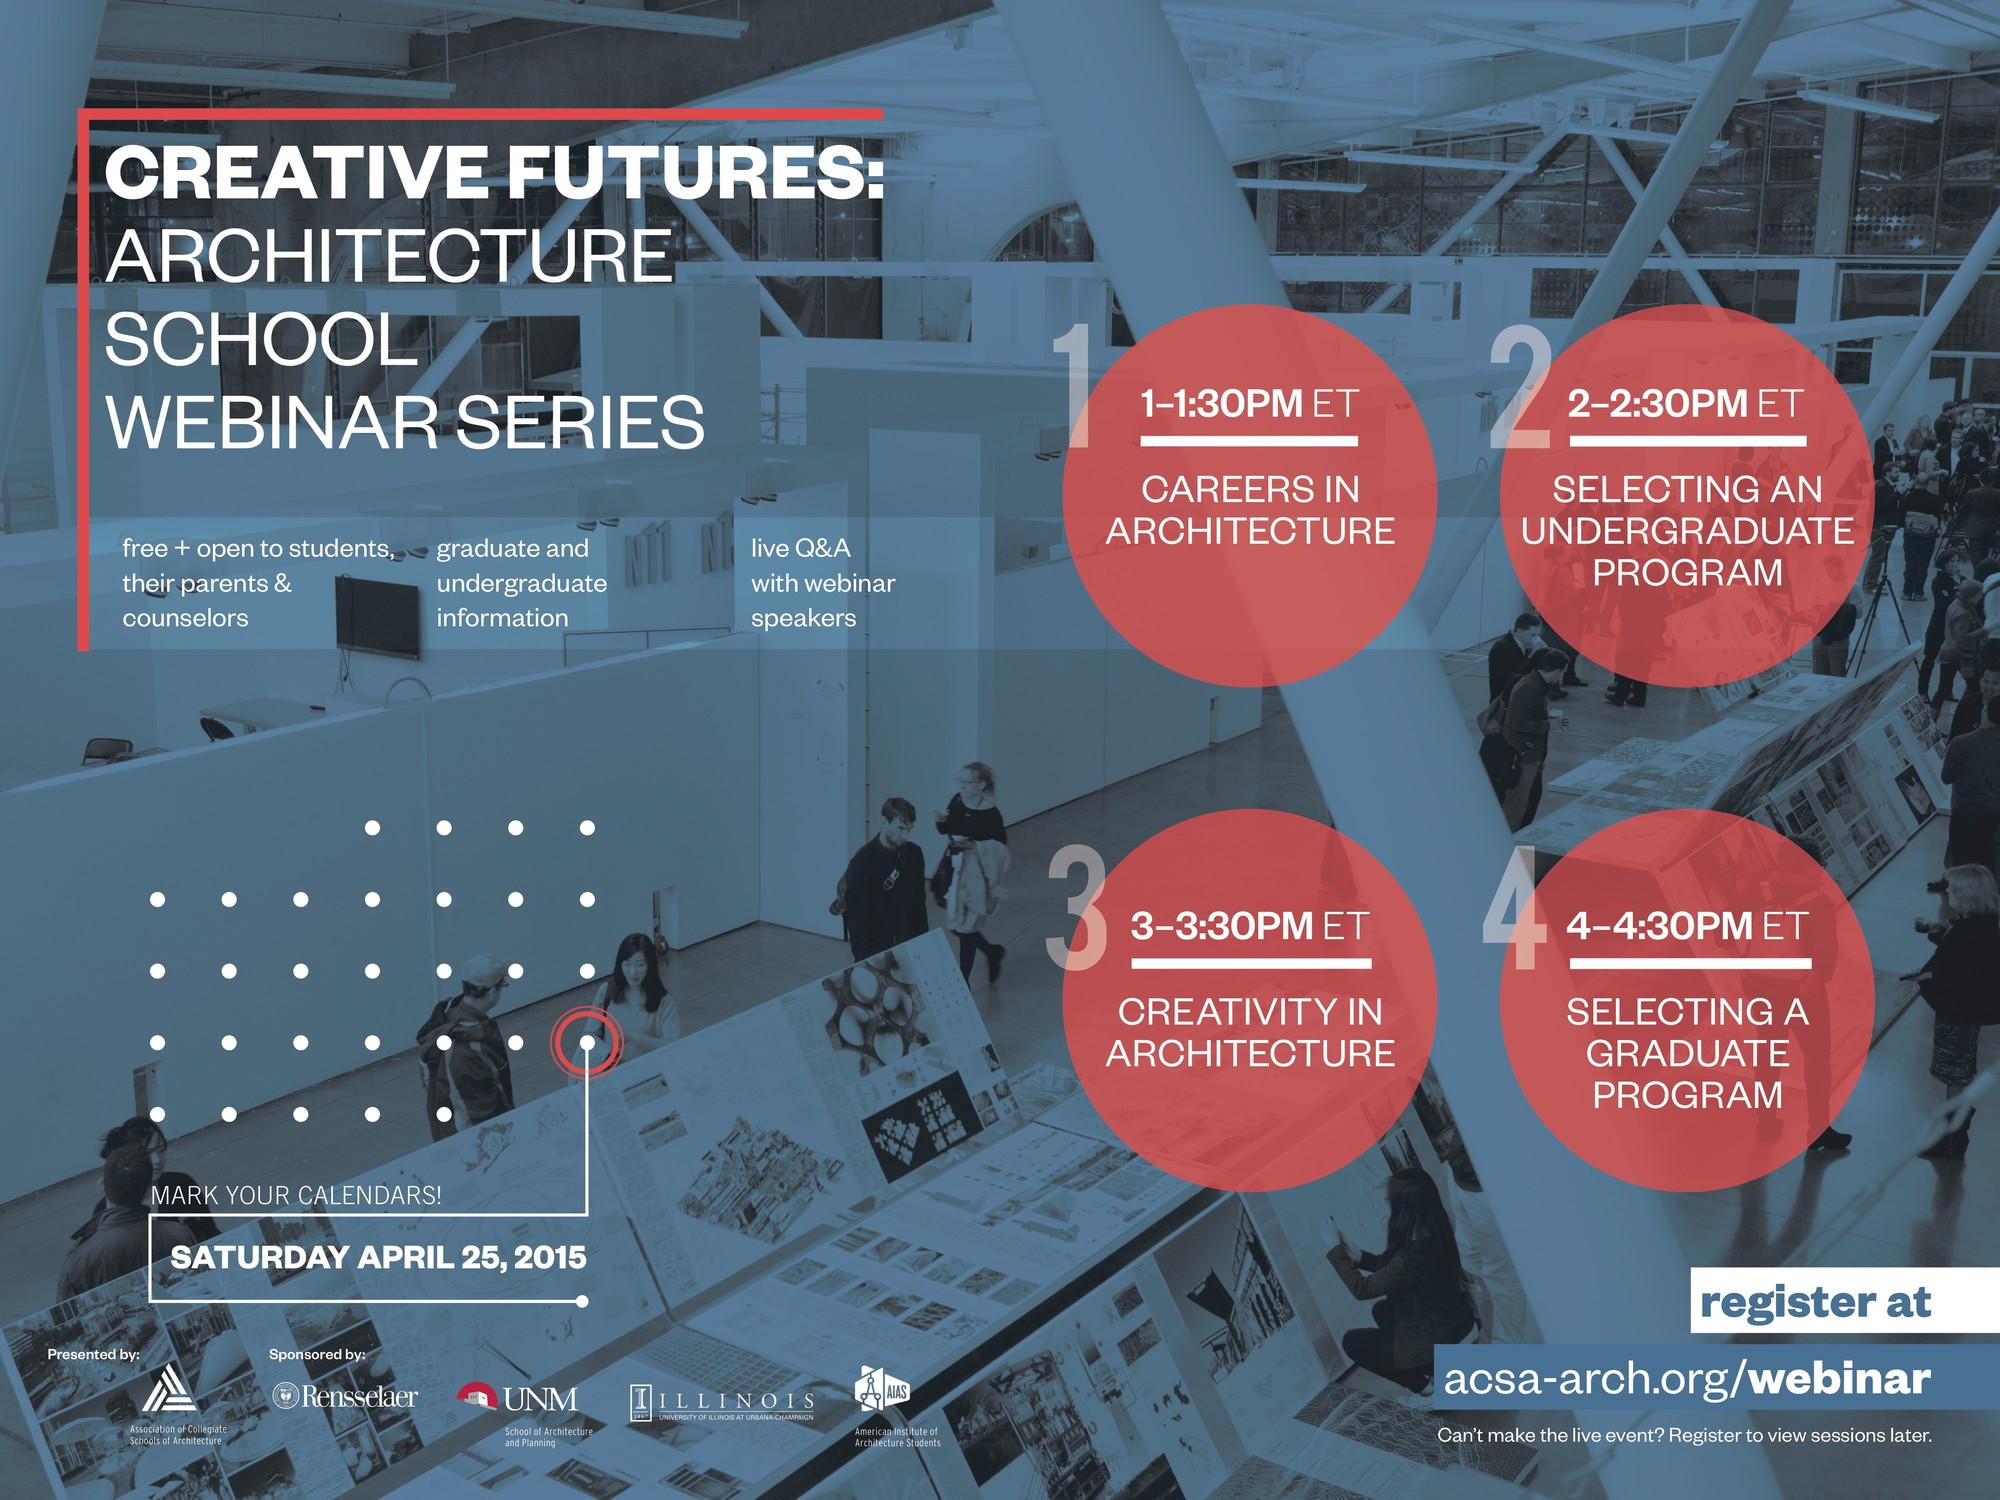 ACSA to Host Architecture School Webinar Series